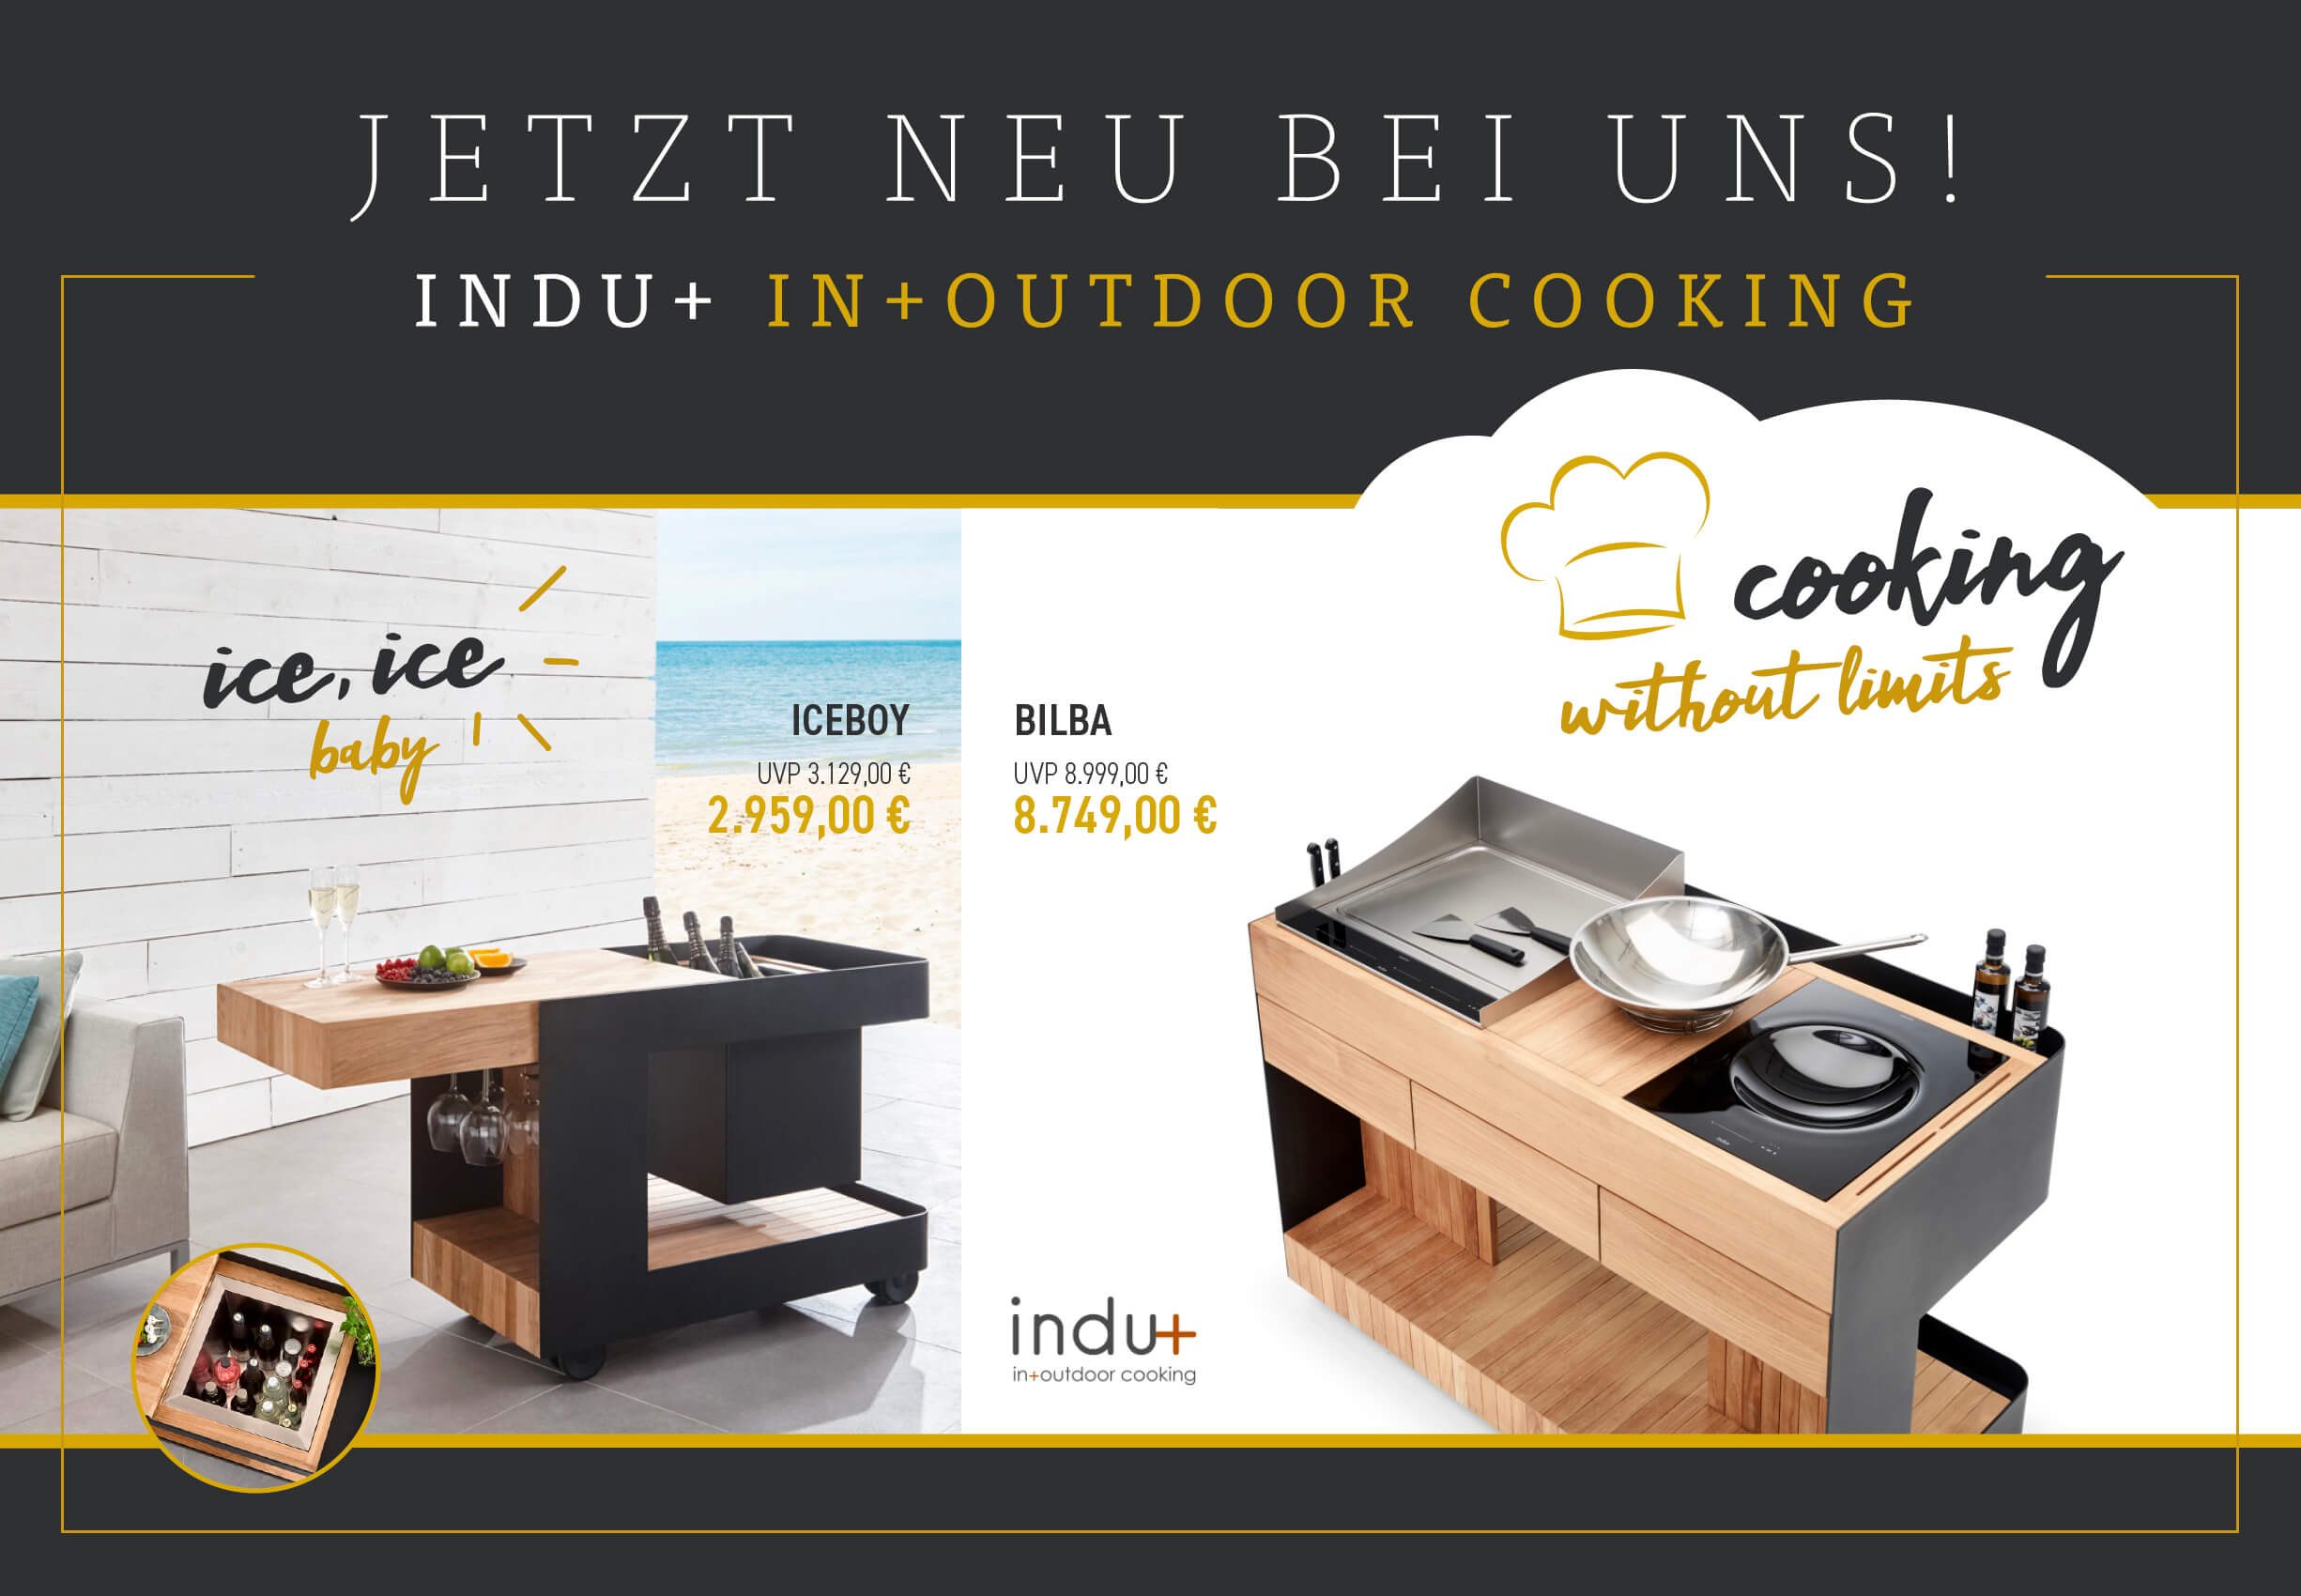 Indu+ In+Outdoor Cooking